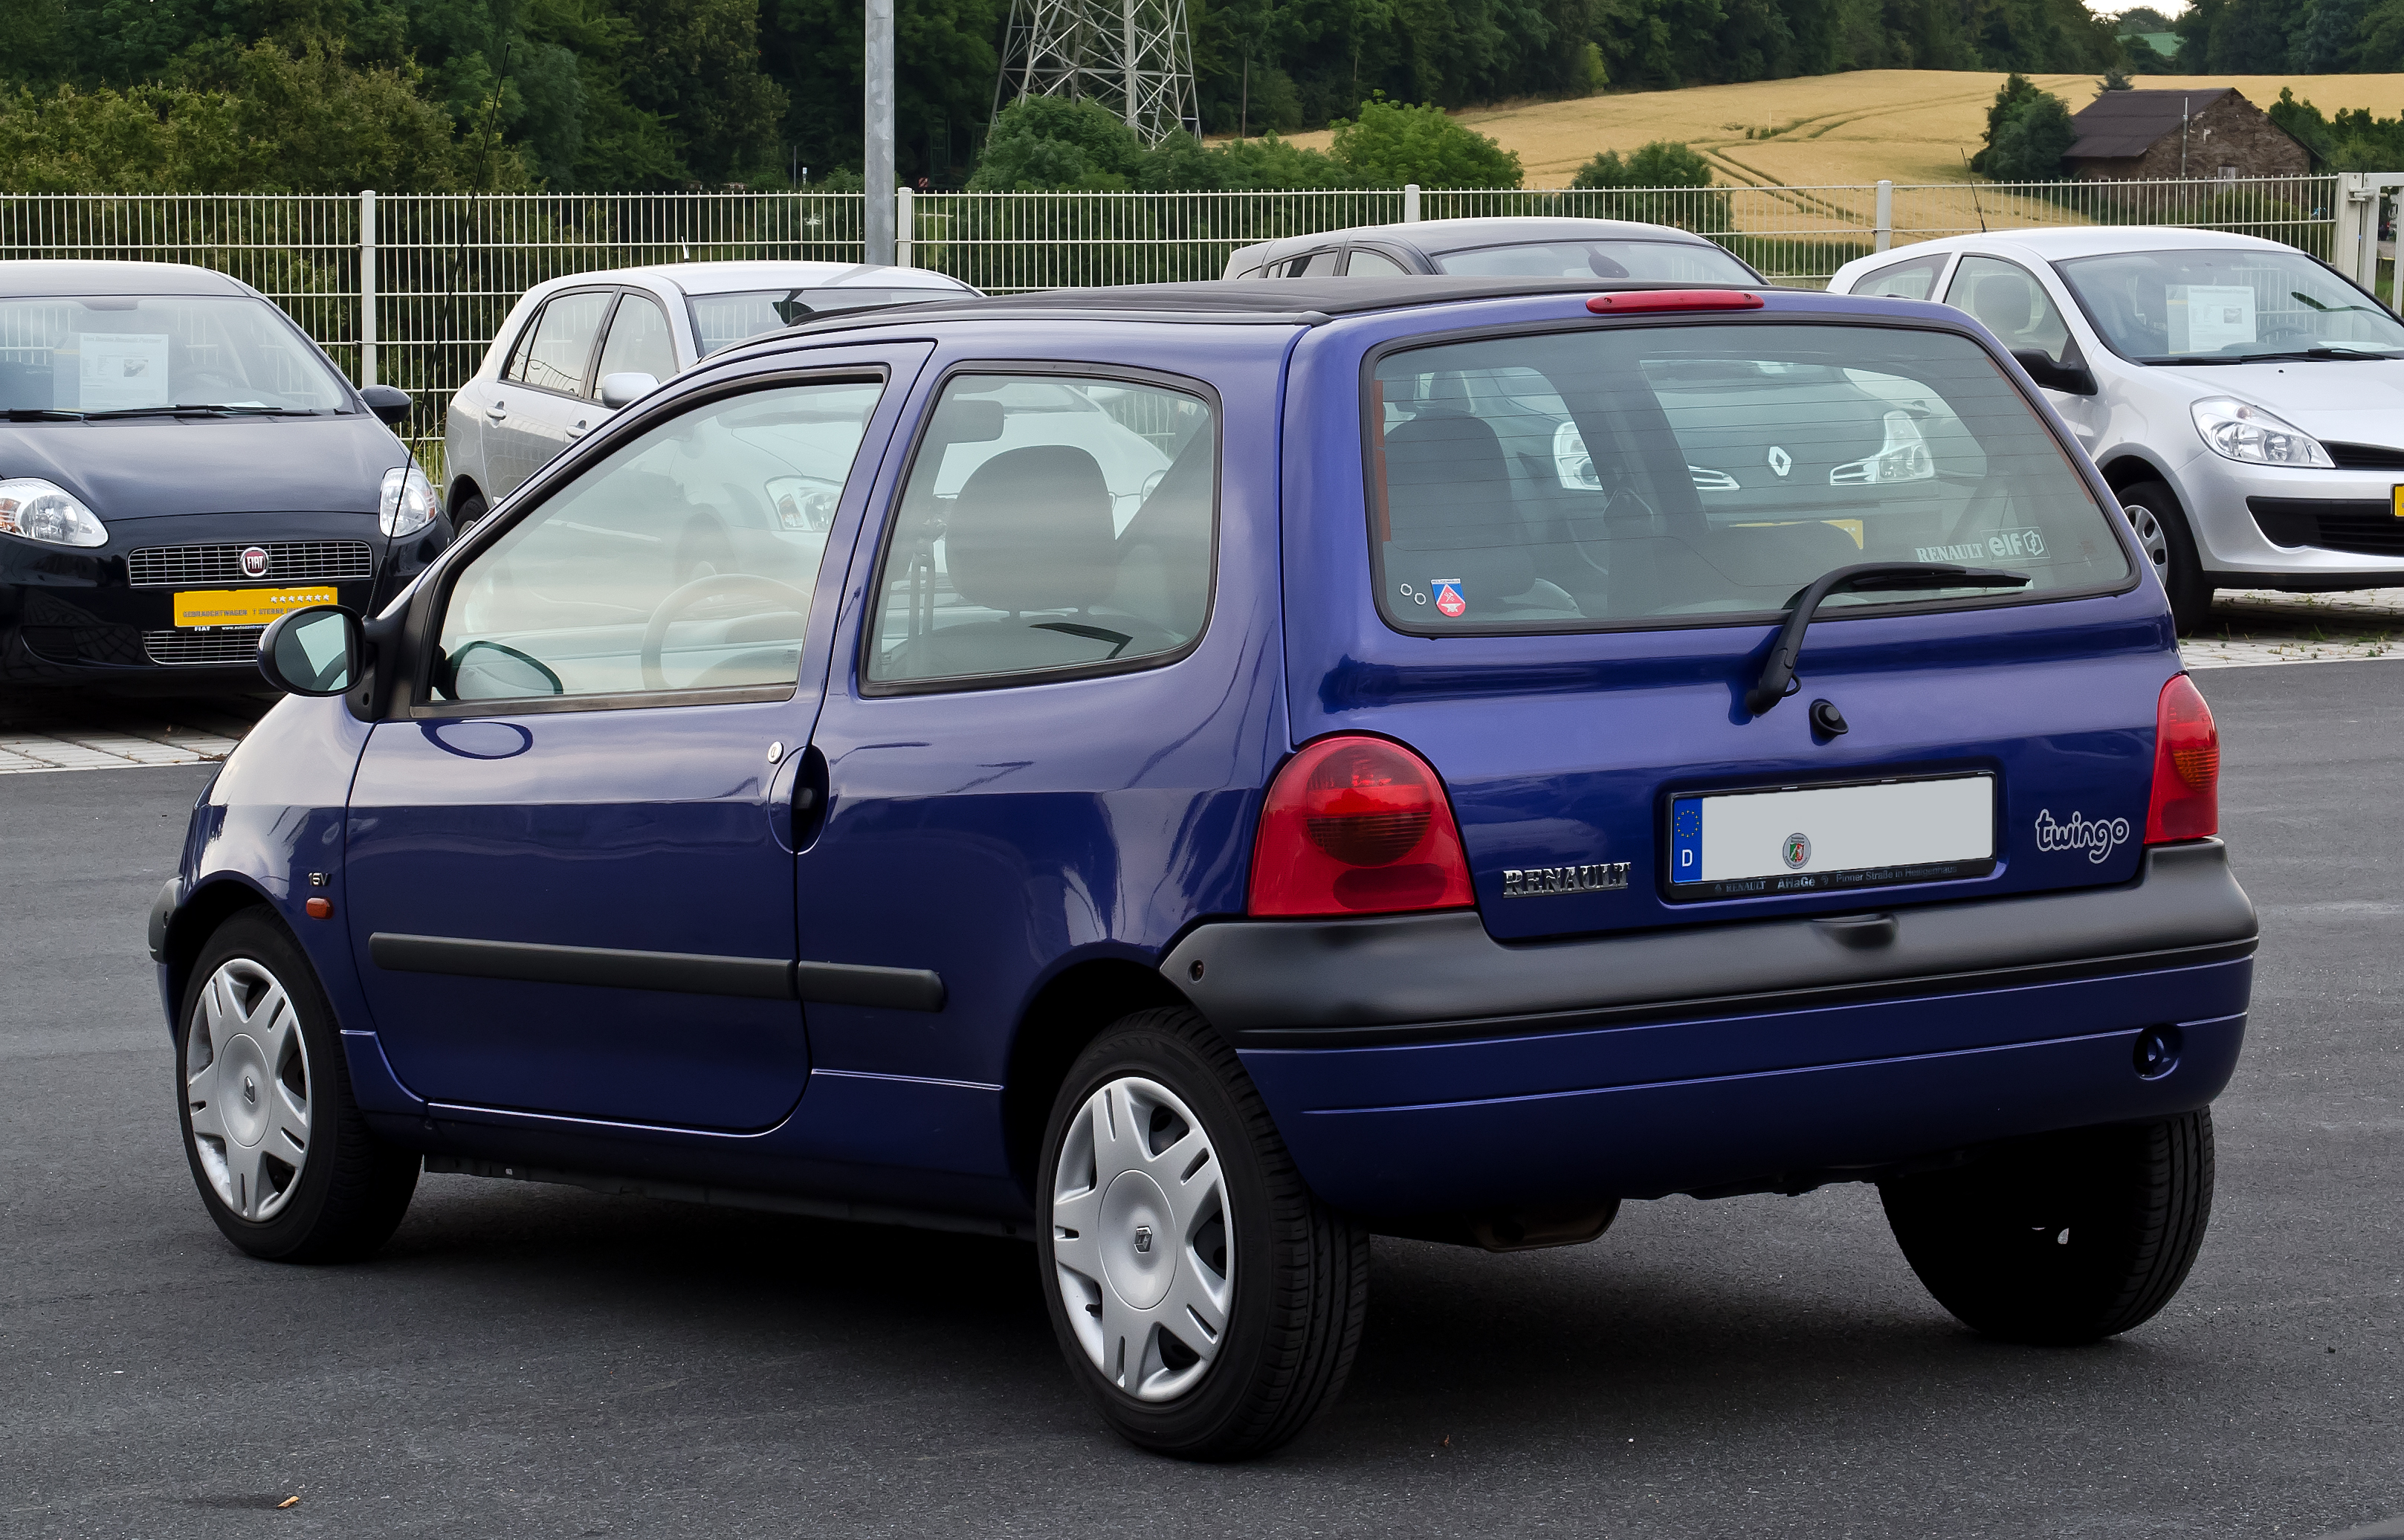 file renault twingo i facelift heckansicht 31 juli 2012 wikipedia. Black Bedroom Furniture Sets. Home Design Ideas